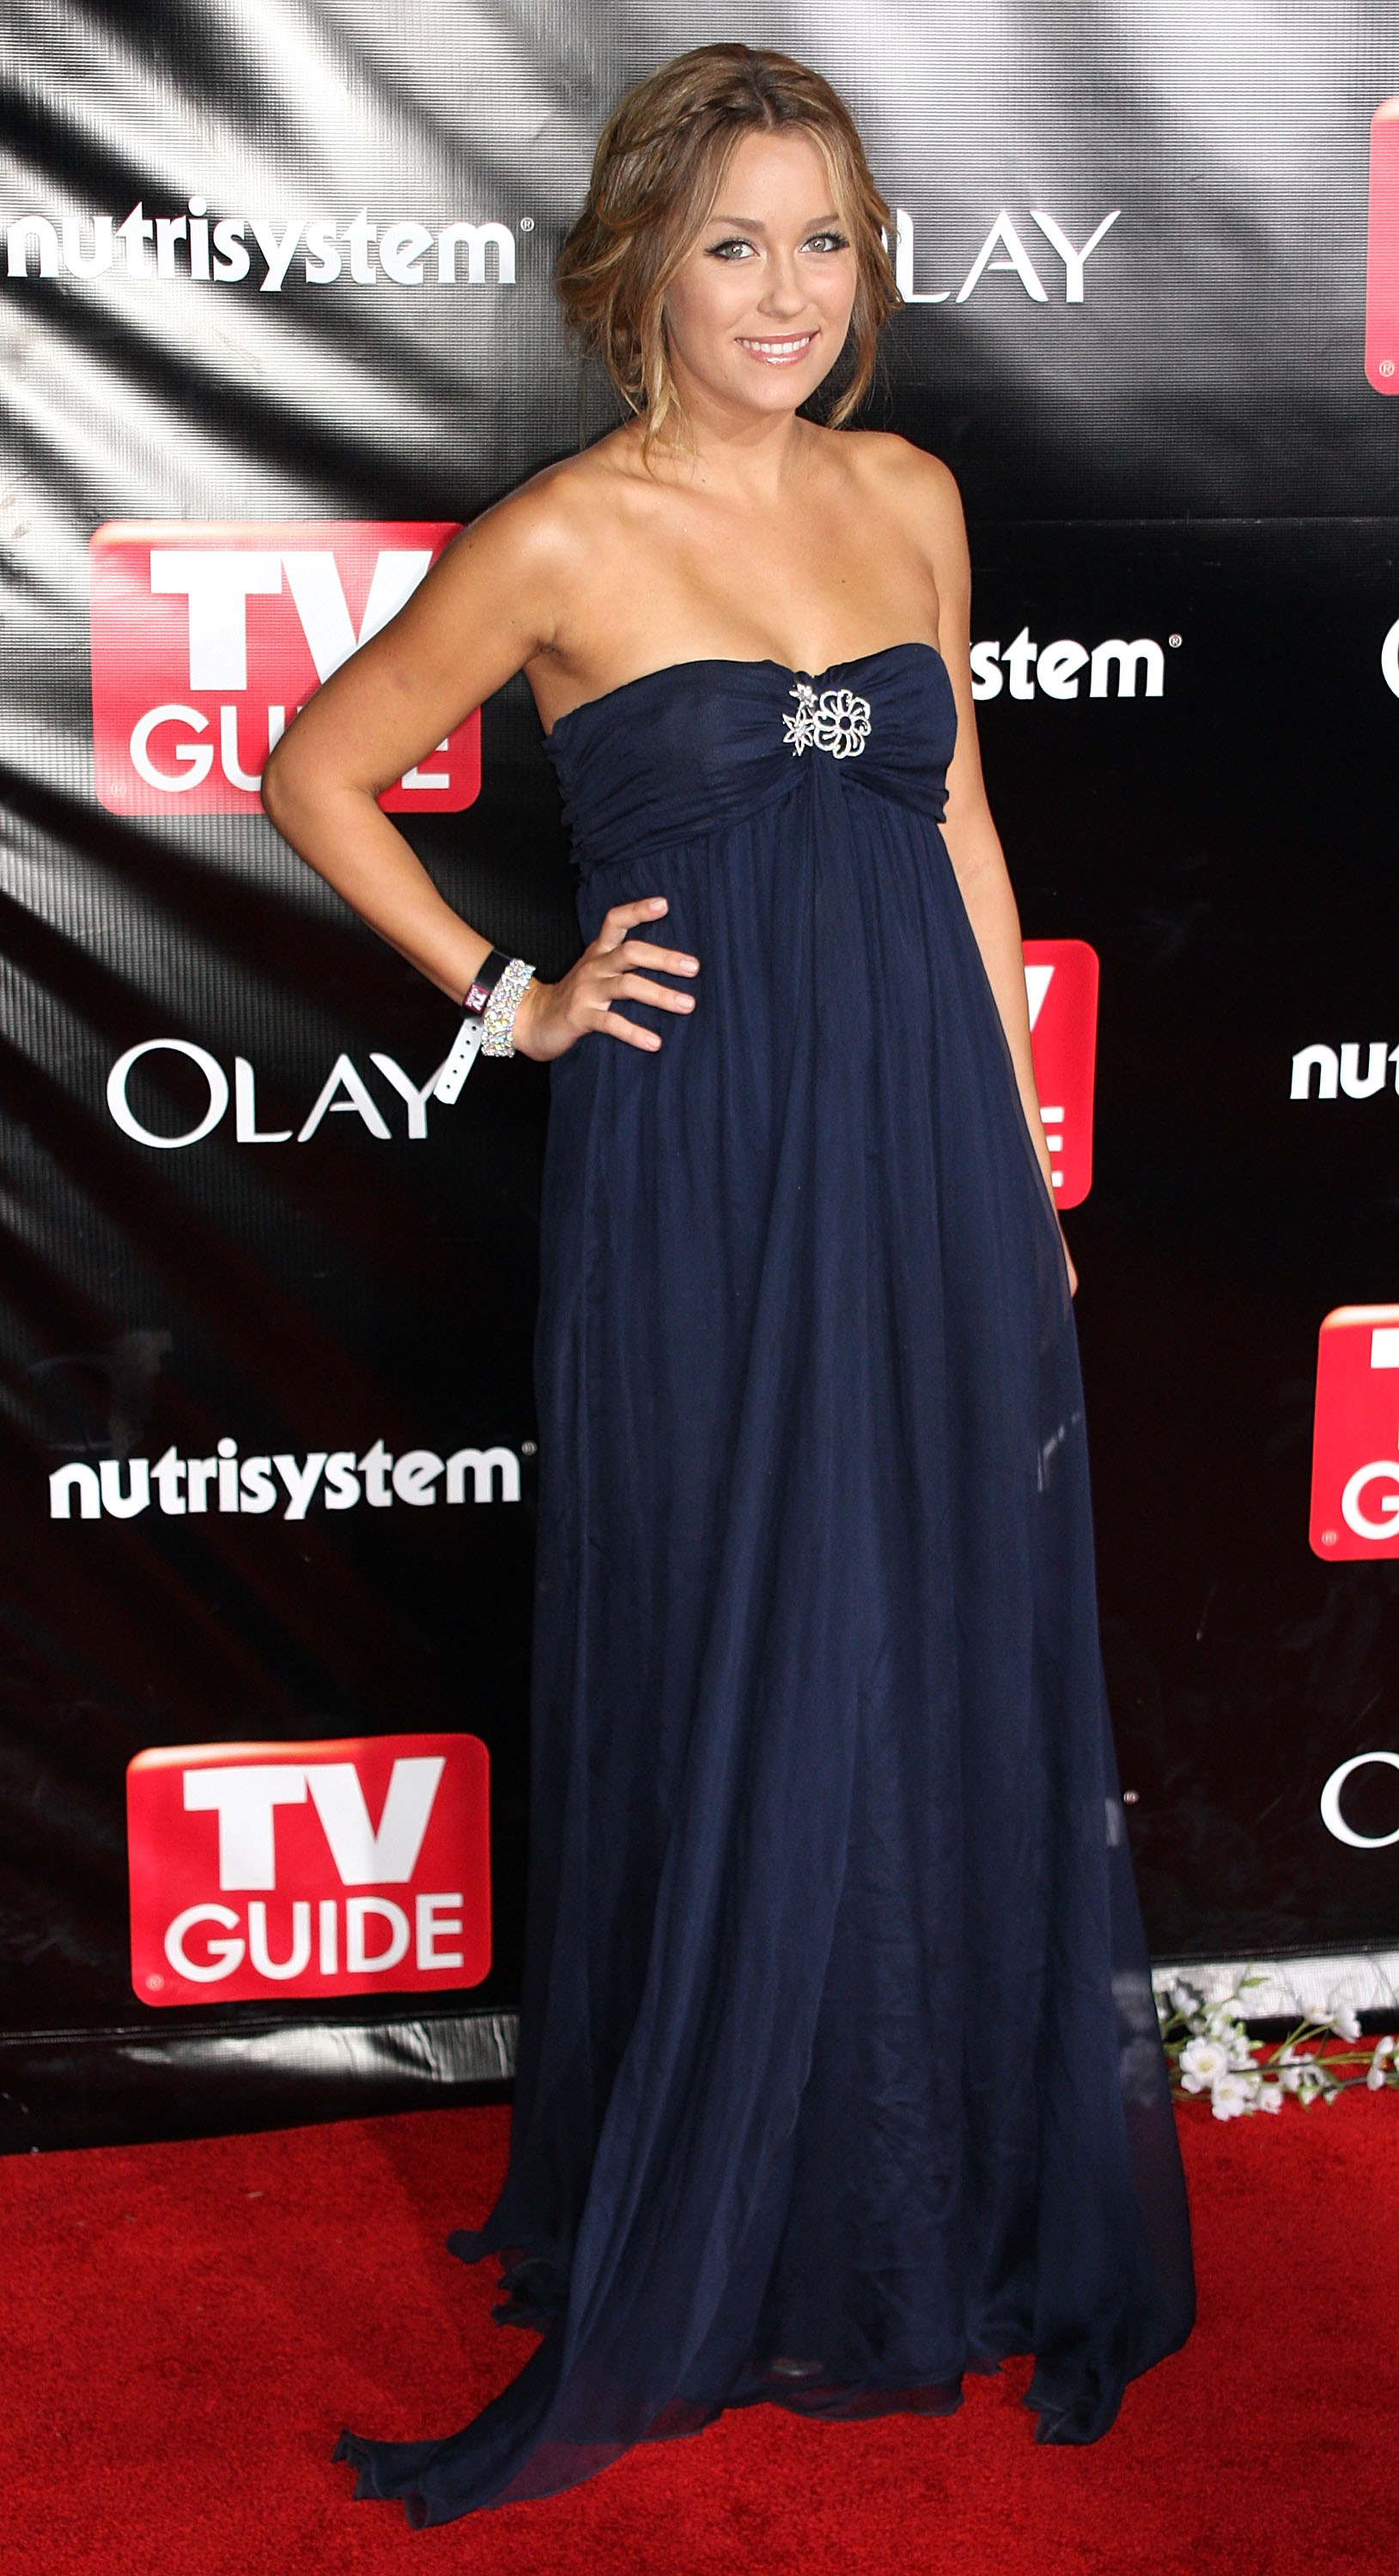 98979_Celebutopia-Lauren_Conrad-TV_Guide55s_Sixth_Annual_Emmy_Awards_After_Party-03_122_116lo.jpg